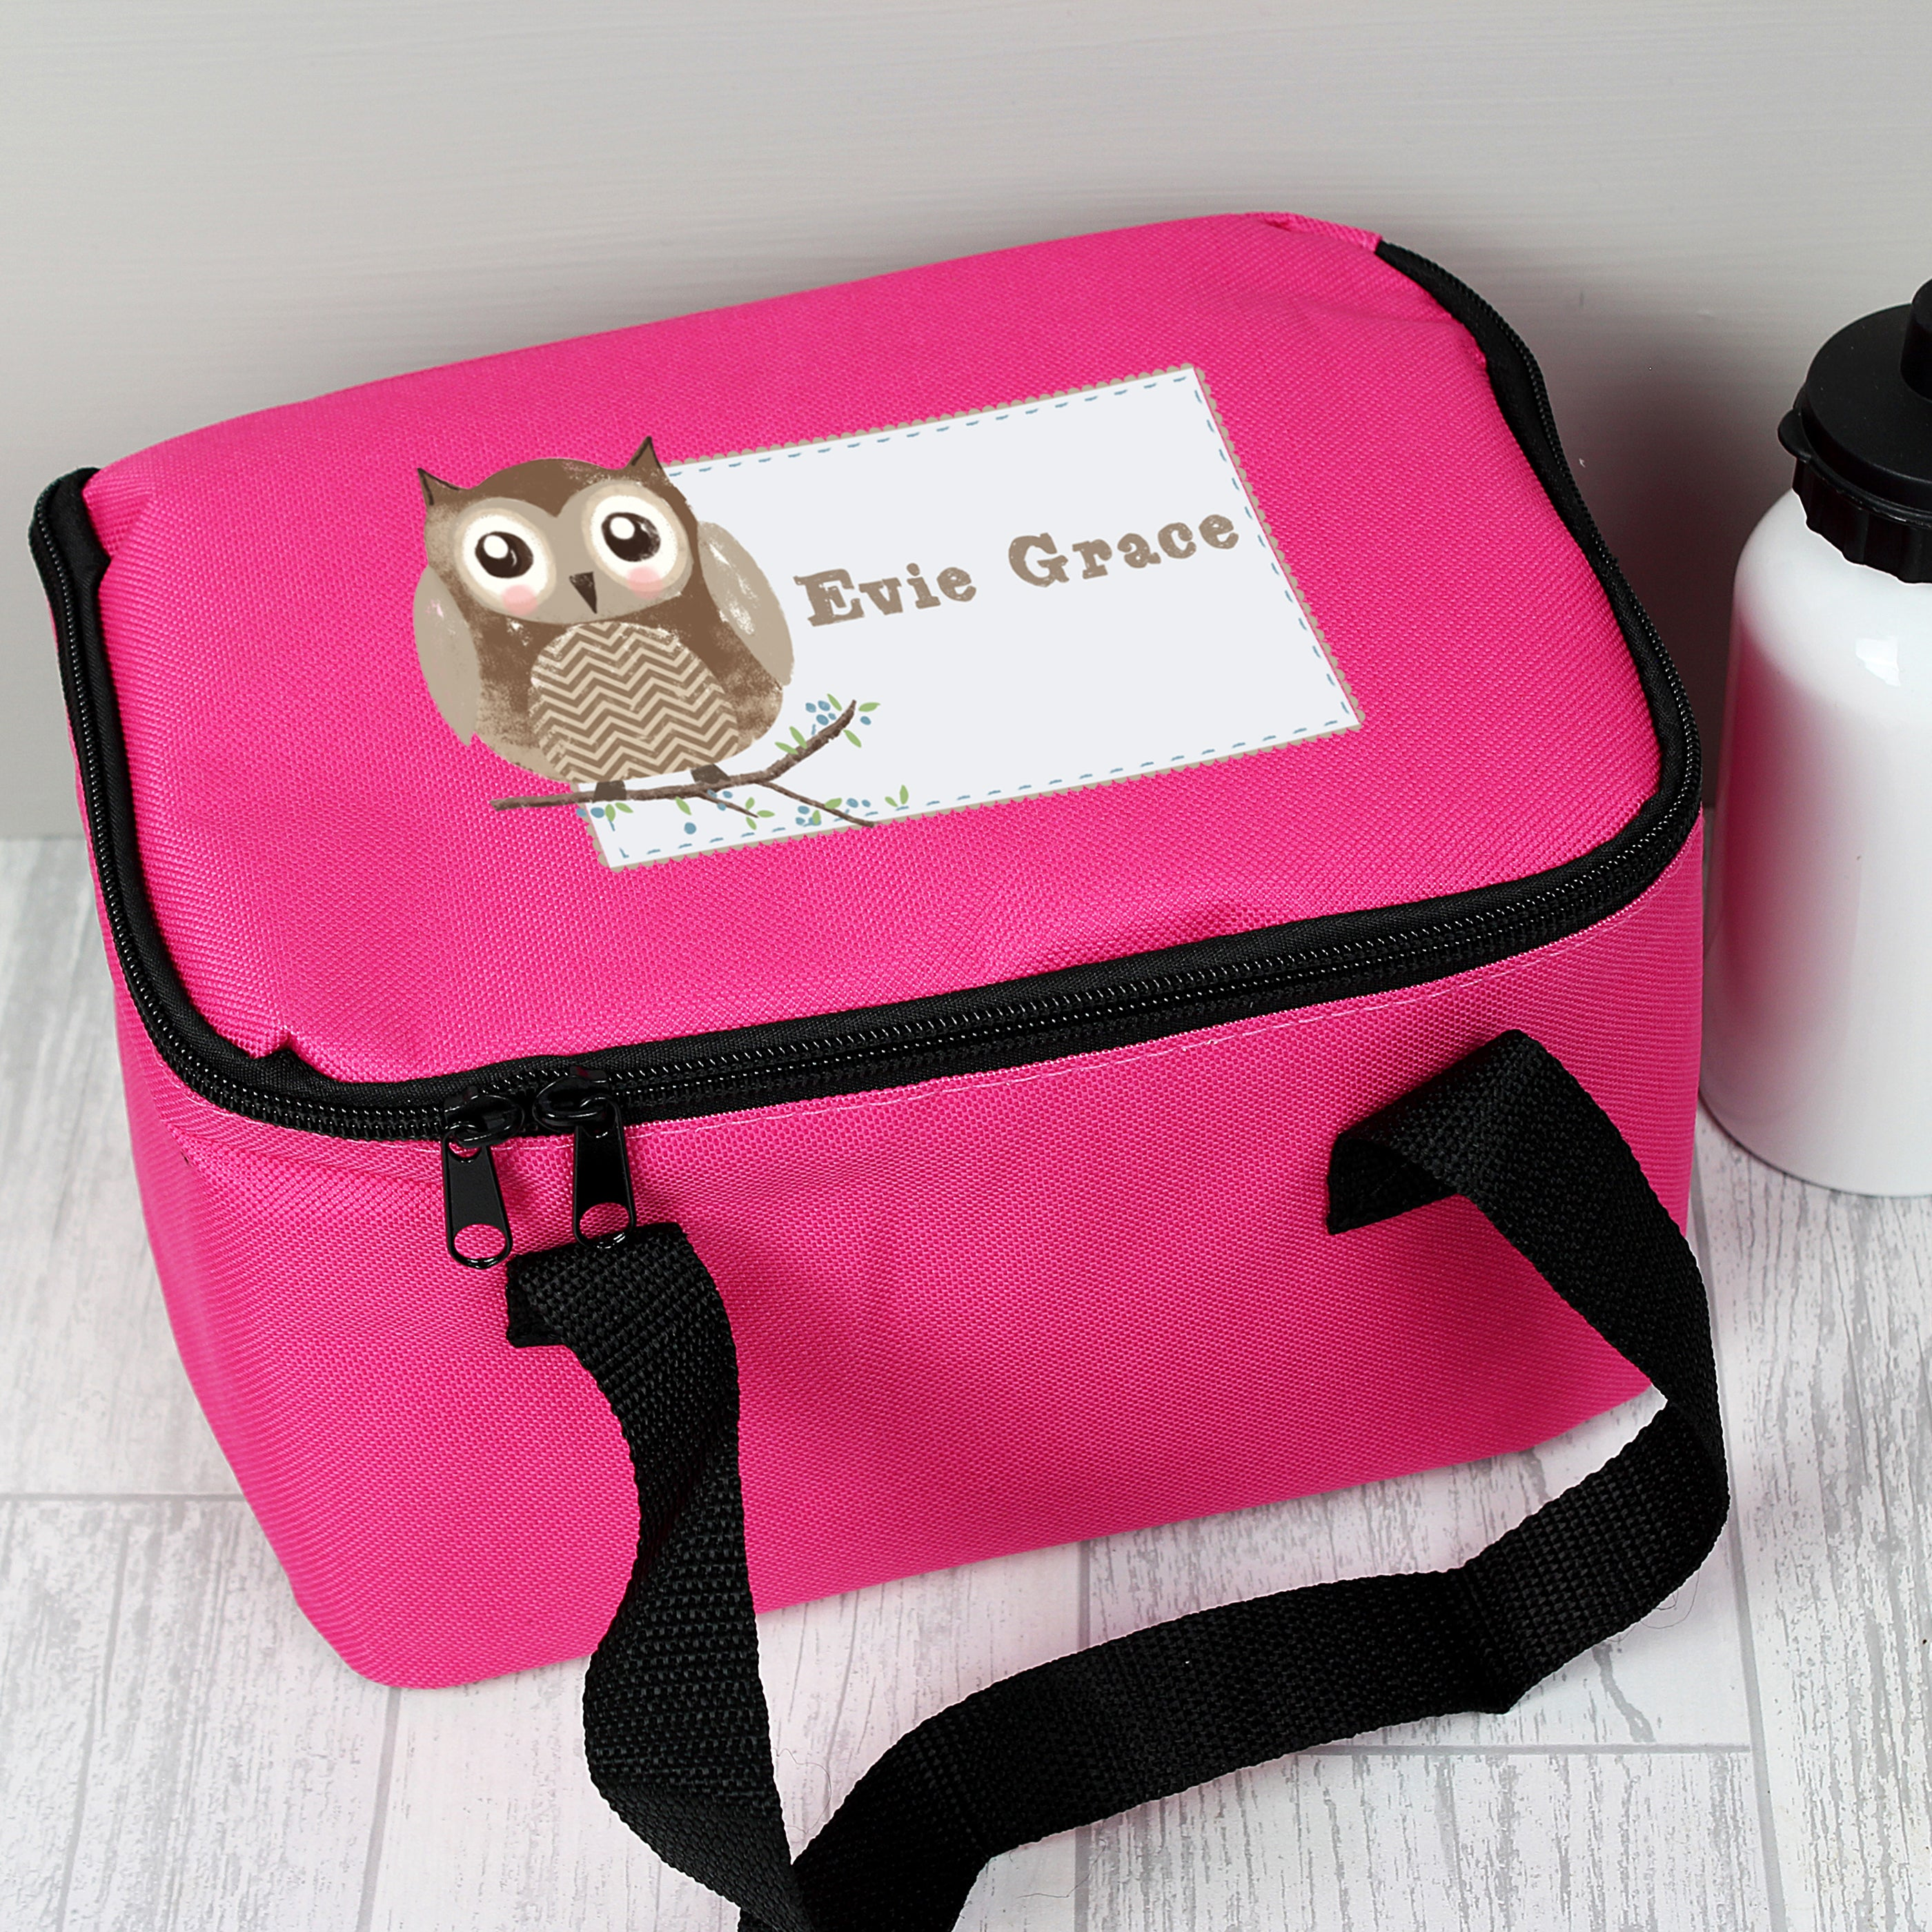 Personalised Woodland Owl Lunch Bag, Food & Beverage Carriers by Gifts24-7